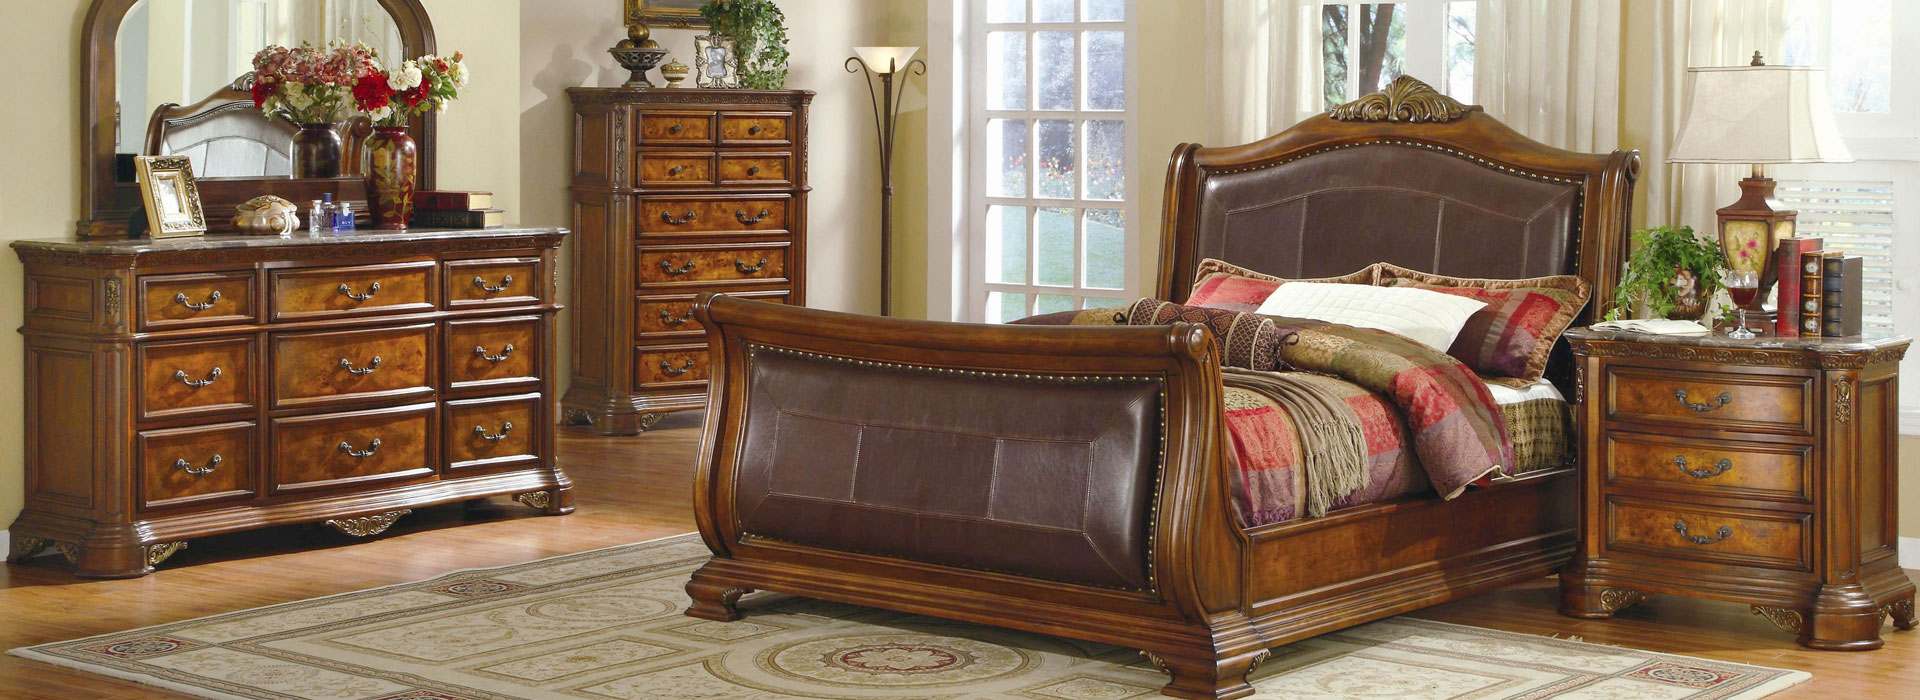 Furniture Slider Image